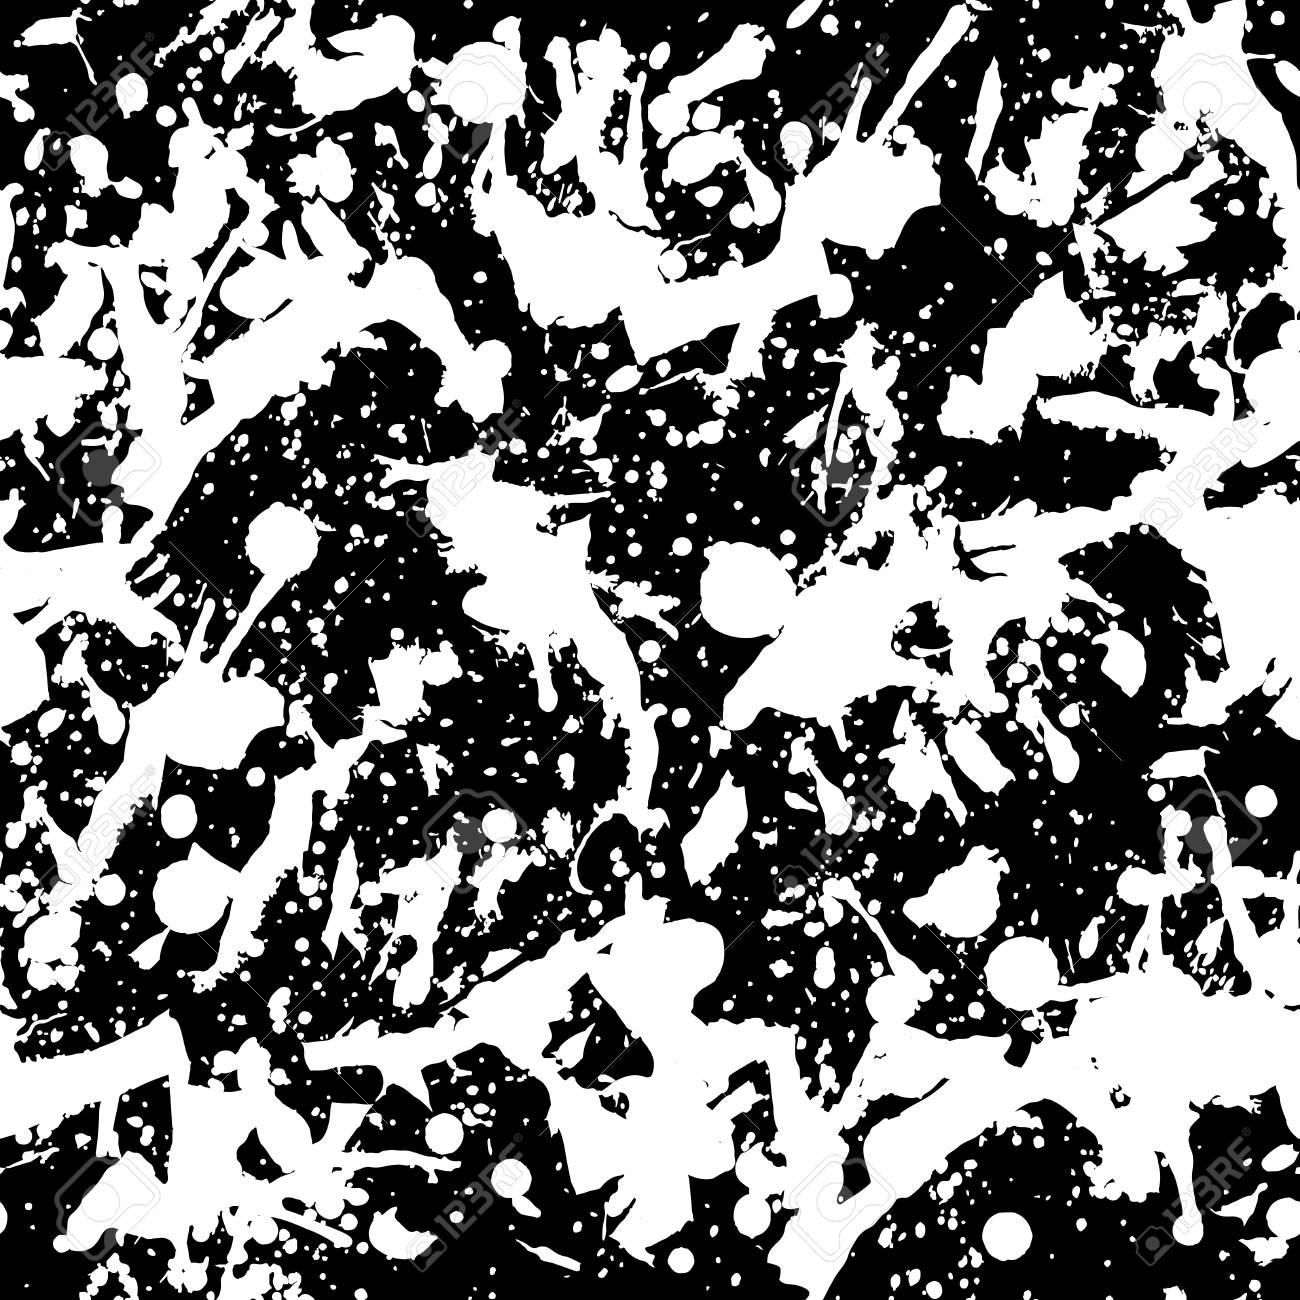 wallpaper paint splash black background